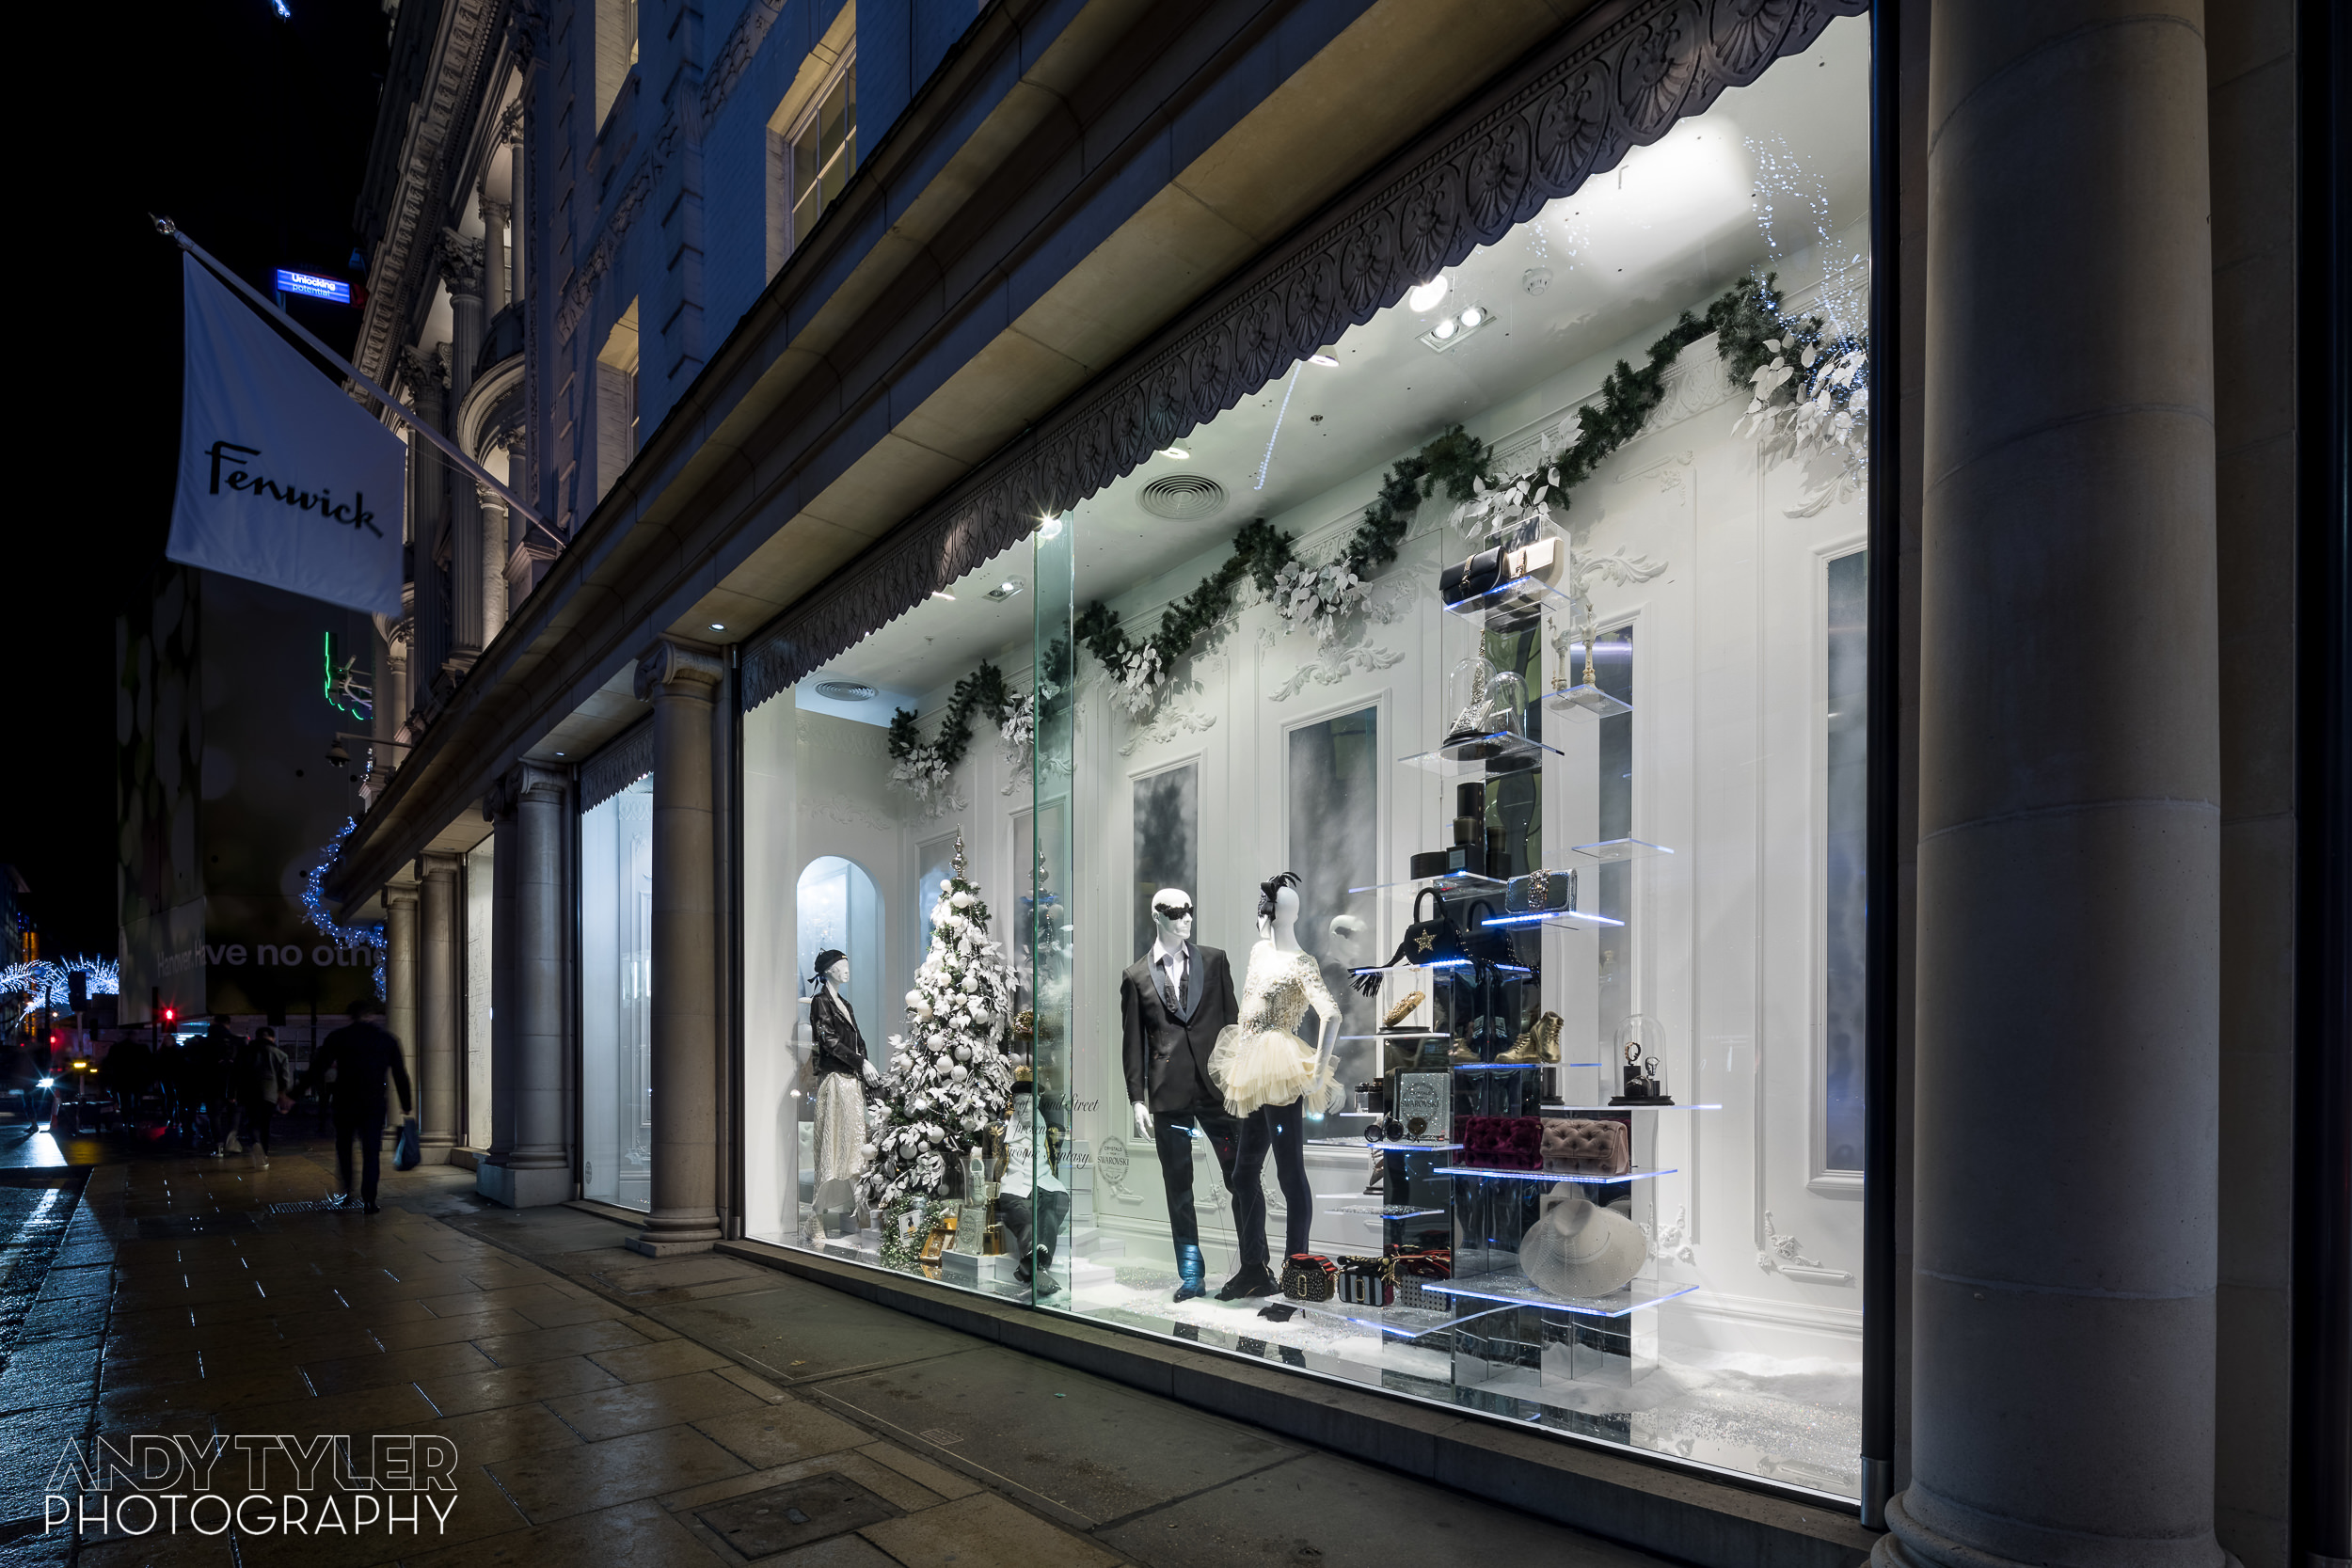 Andy_Tyler_Photography_Luxury_Retail_Interior_002_Andy_Tyler_Photography_001-5DB_7995.jpg